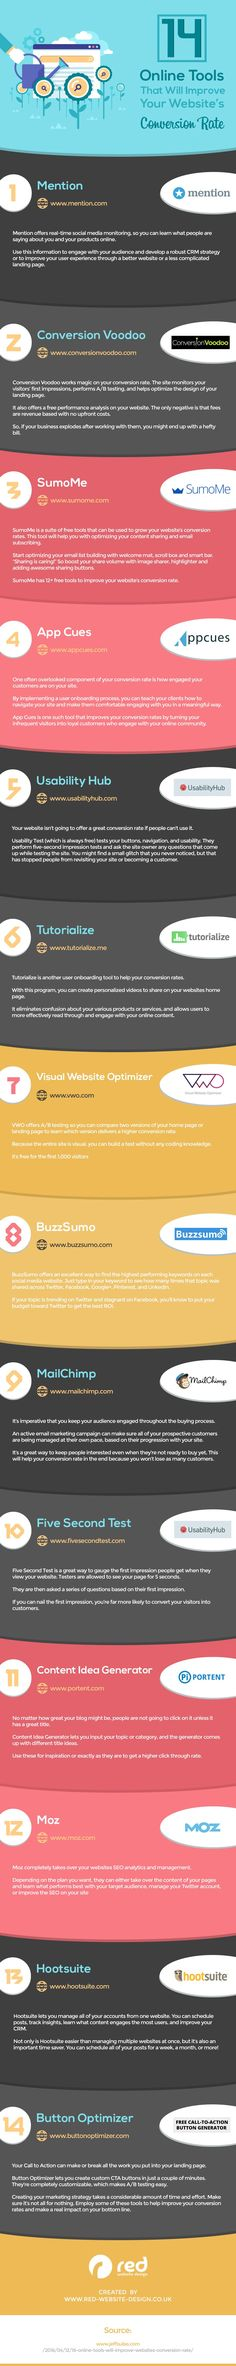 14 Amazing Tools to Improve Your Business Website [Infographic]